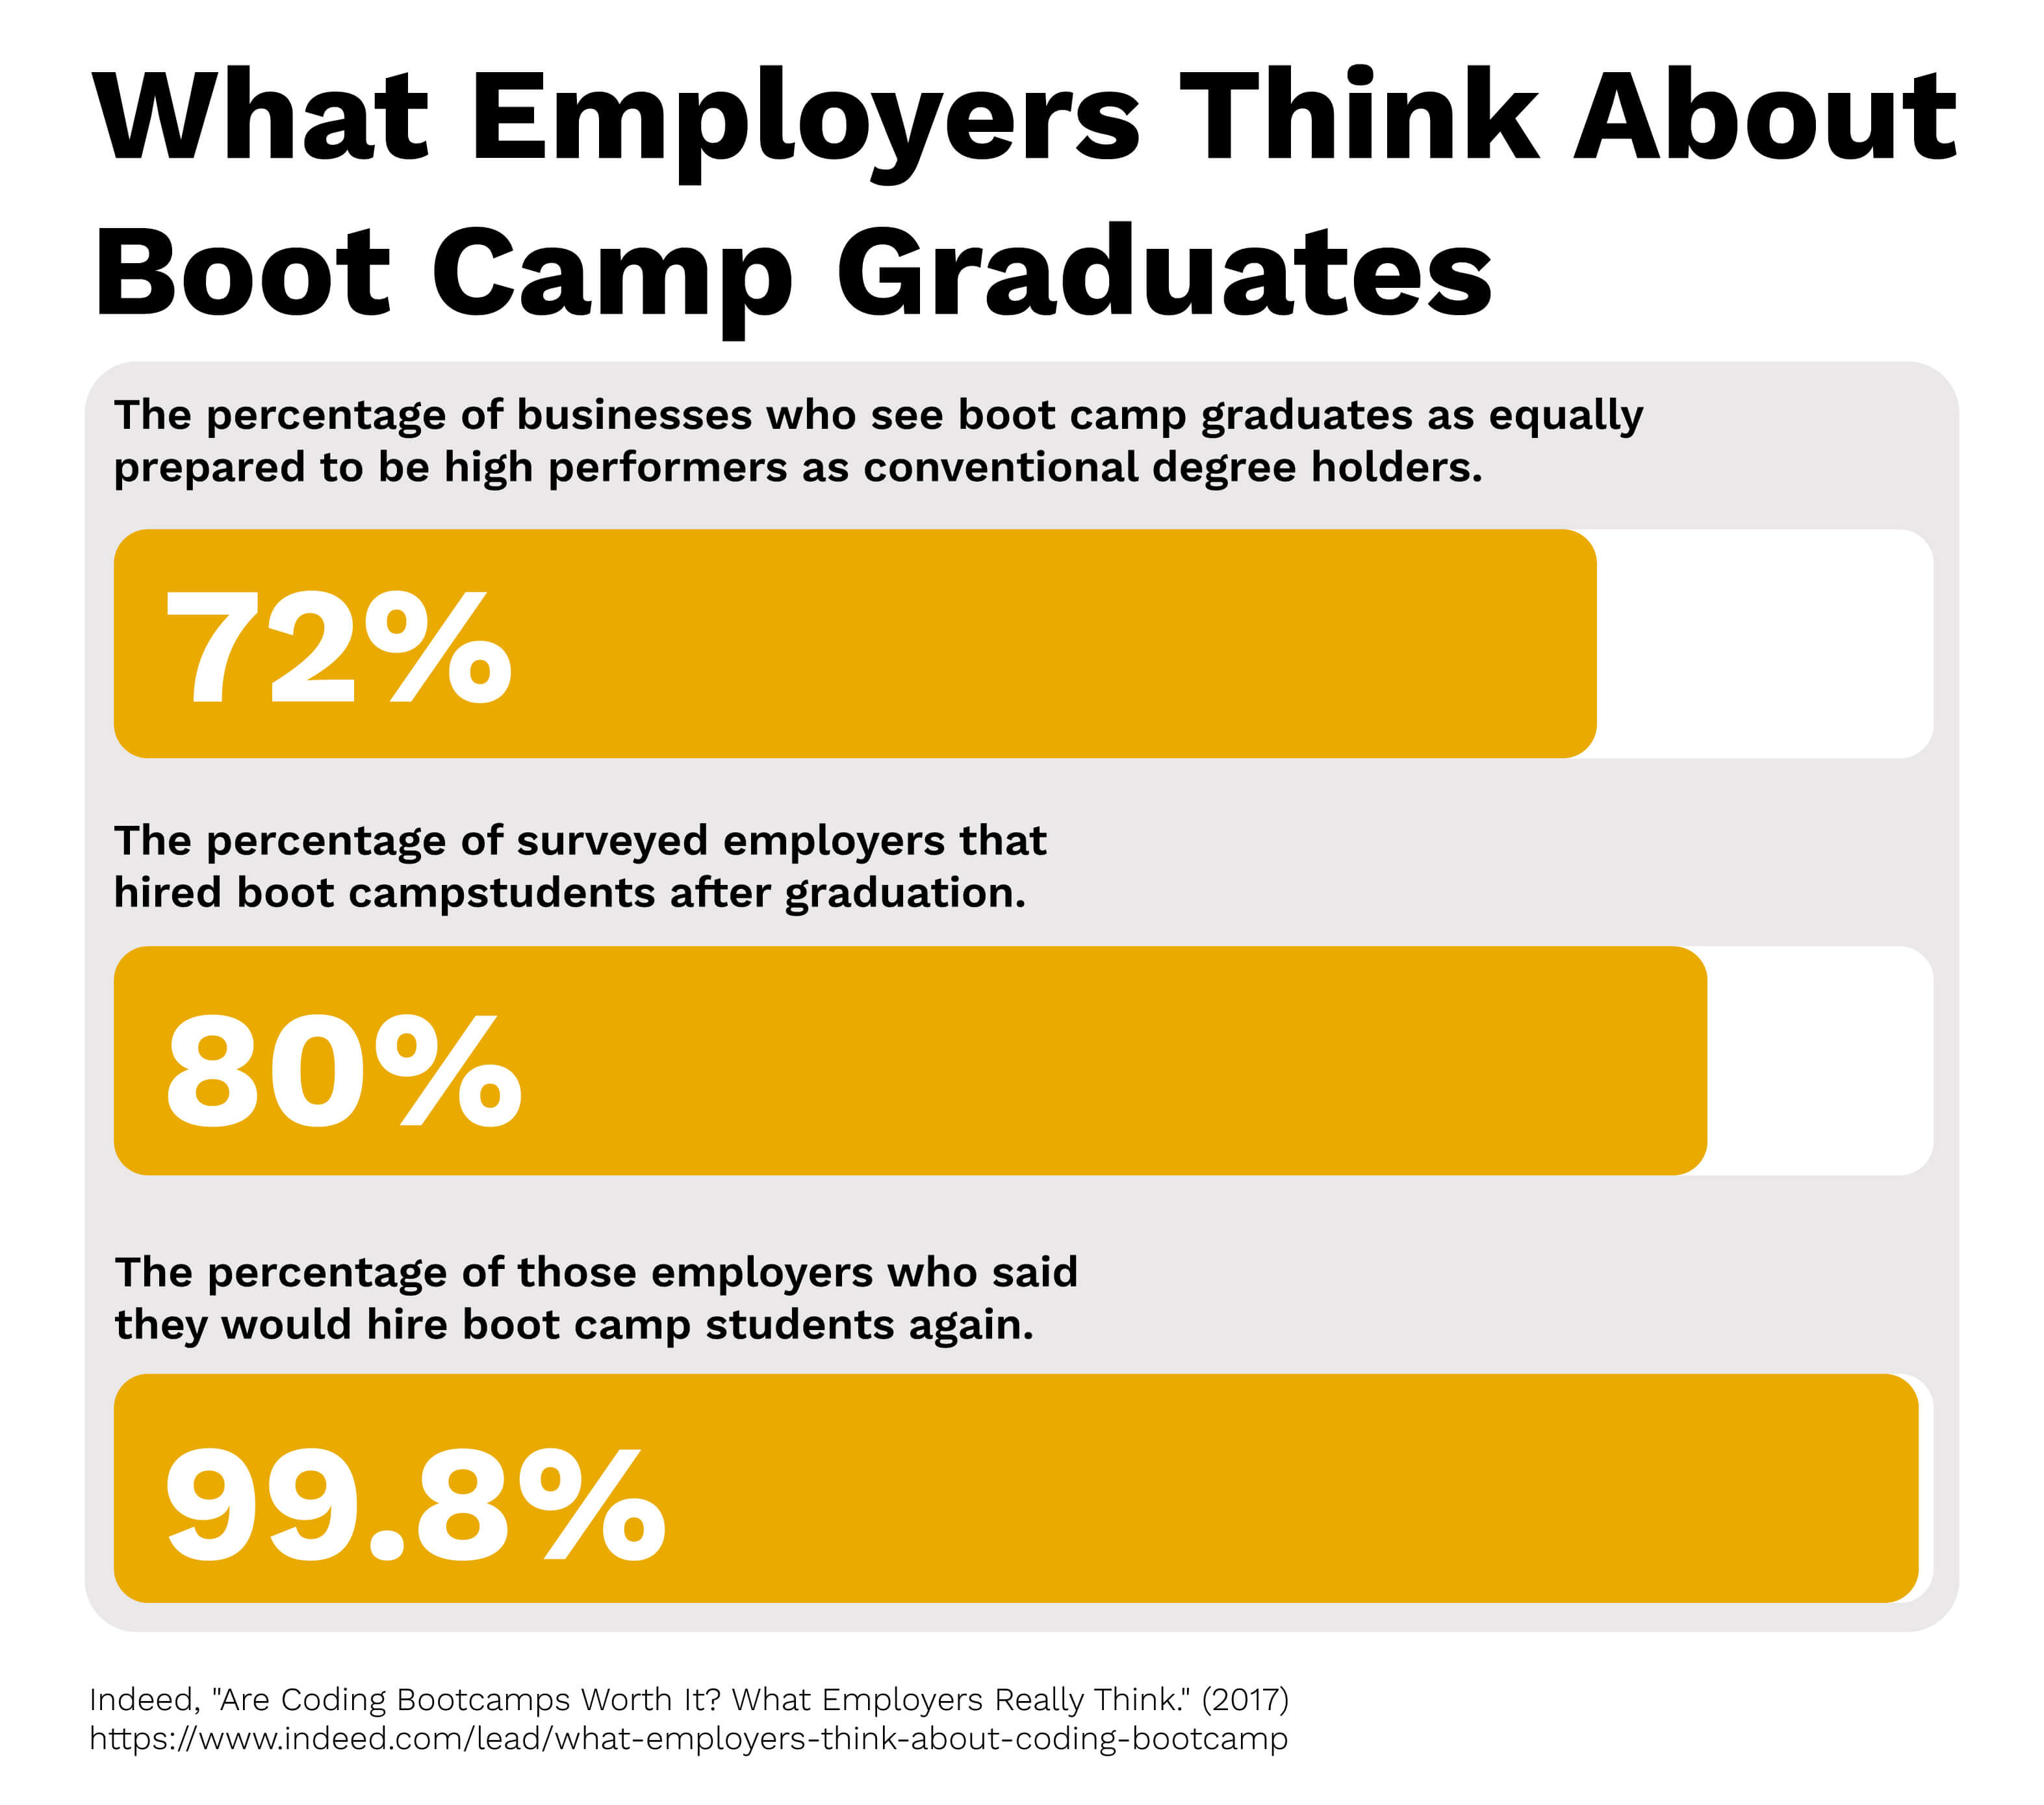 What employers really think about boot camp graduates